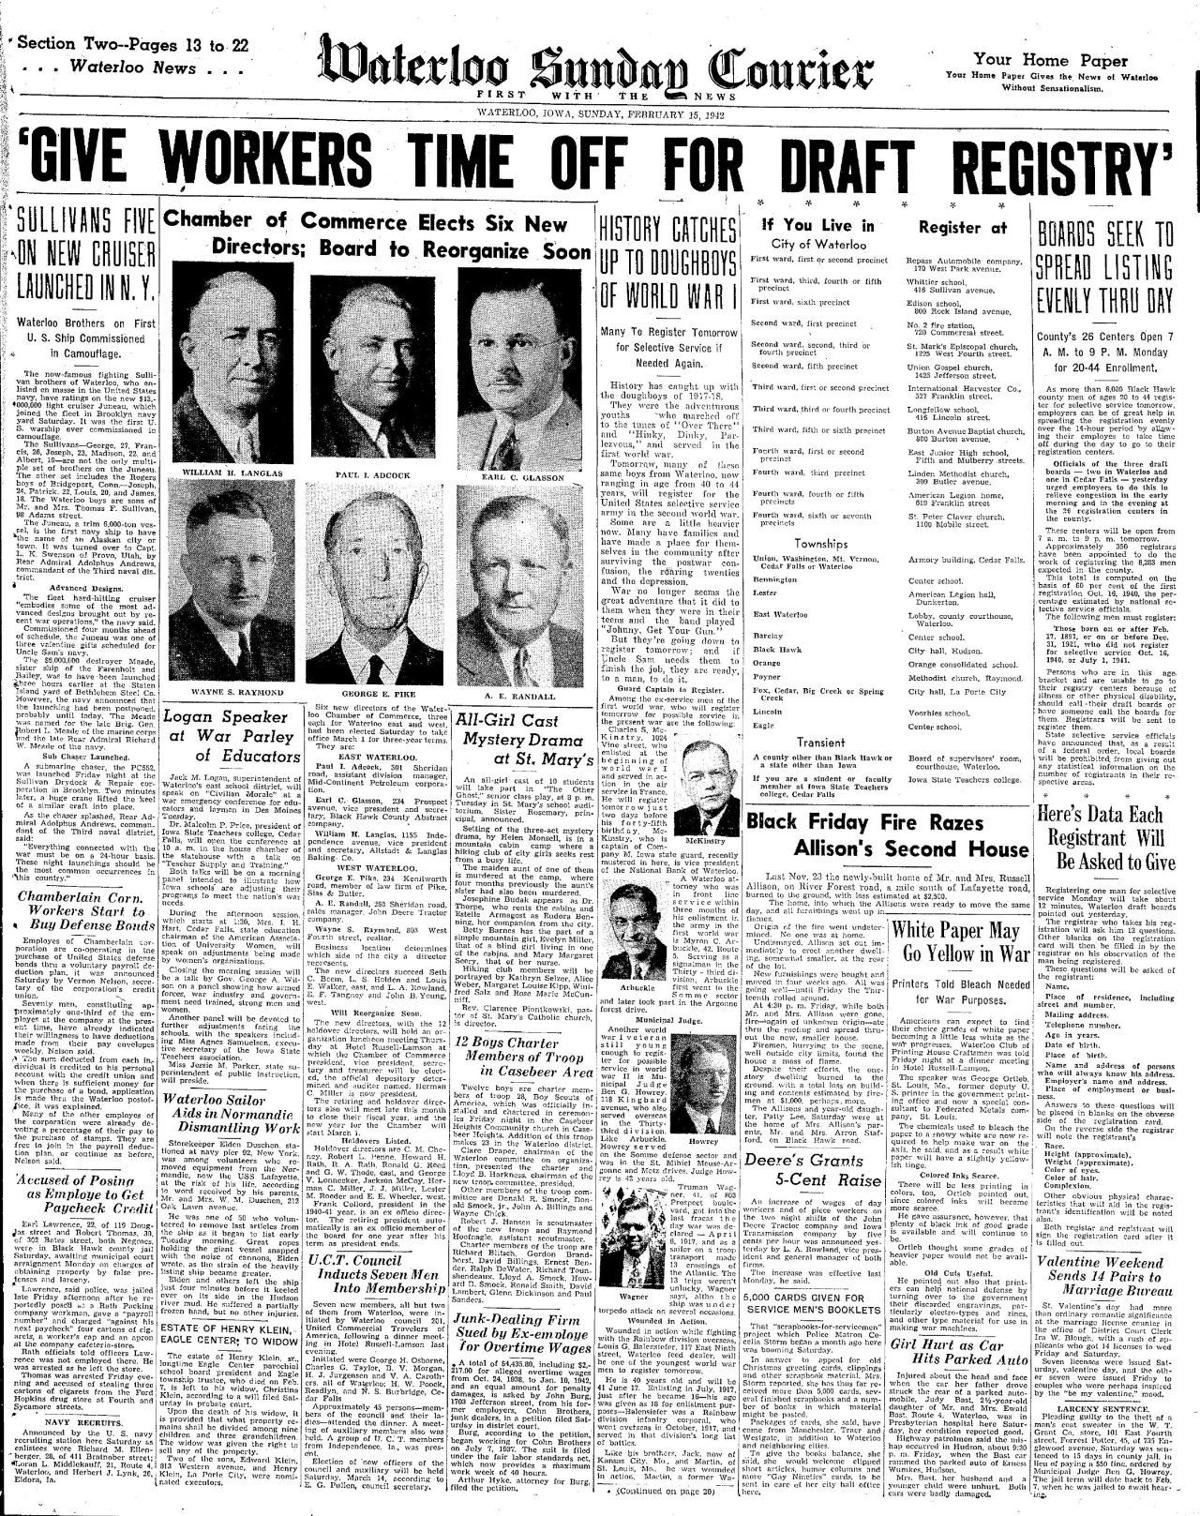 Courier Feb. 15, 1942